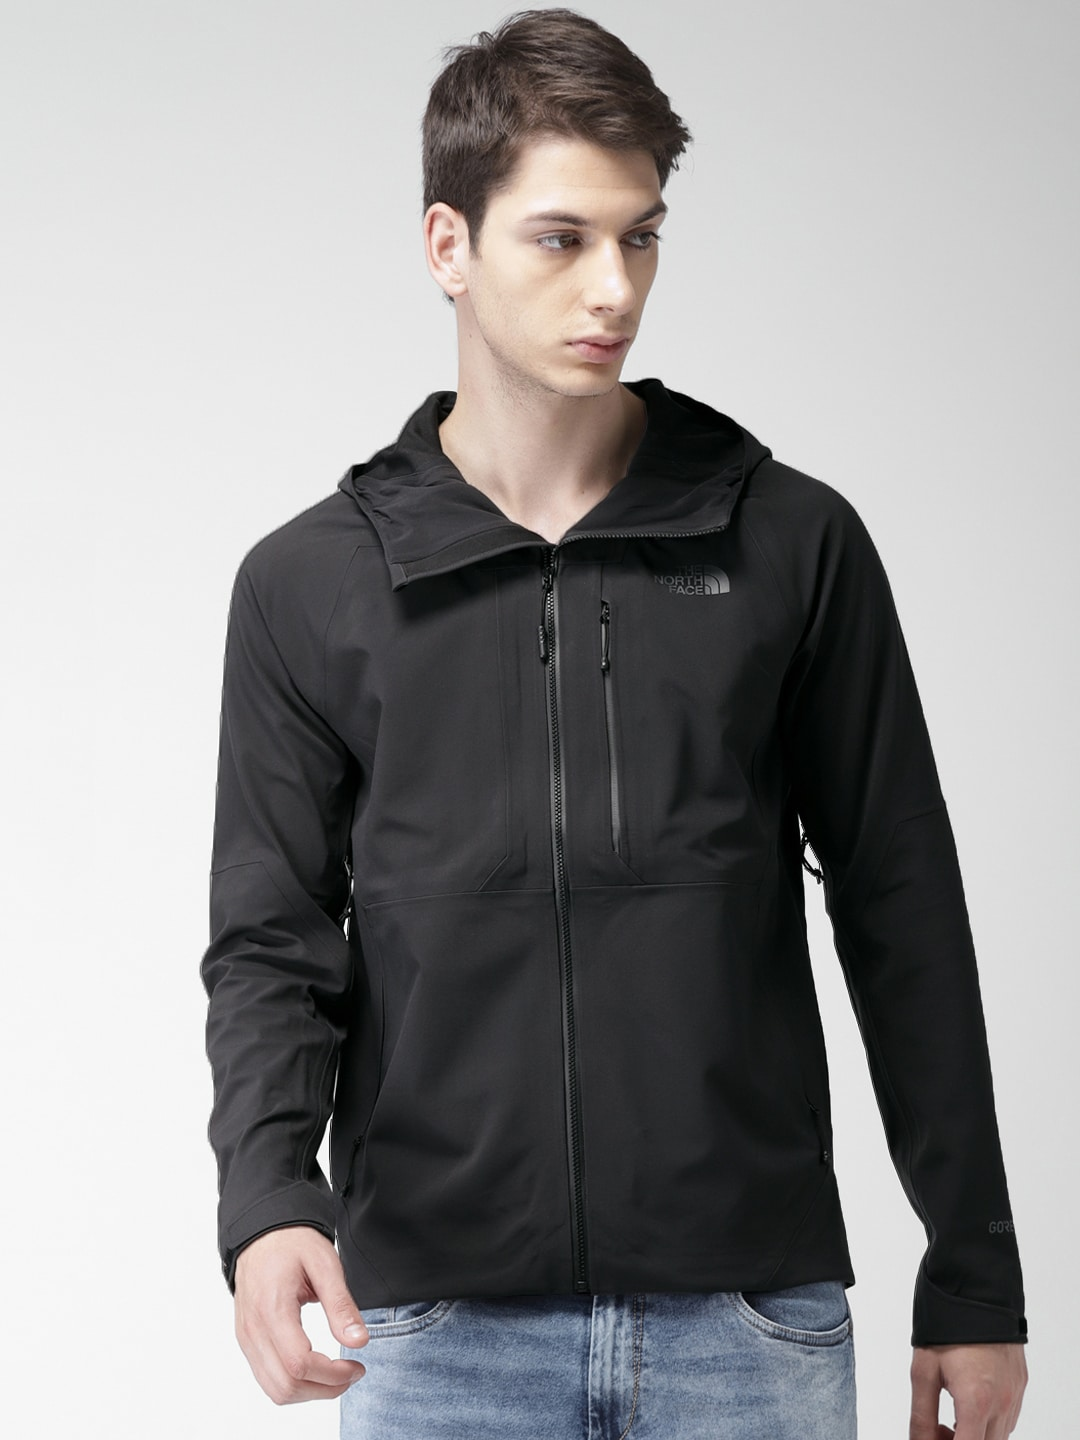 c2517b0184c9 The North Face Jackets - Buy Jacket from The North Face Online